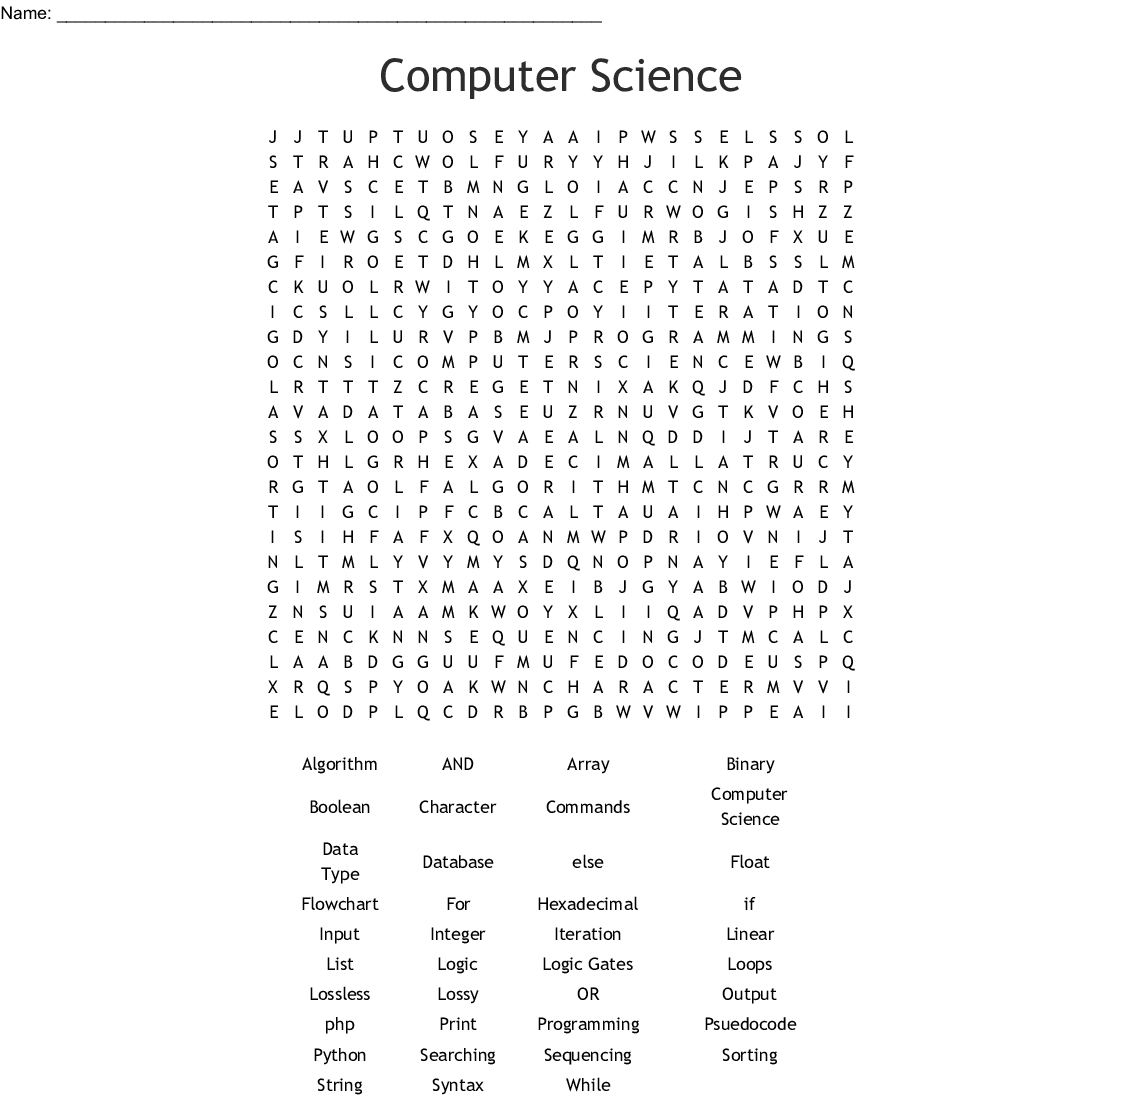 Computer Science Word Search - Wordmint